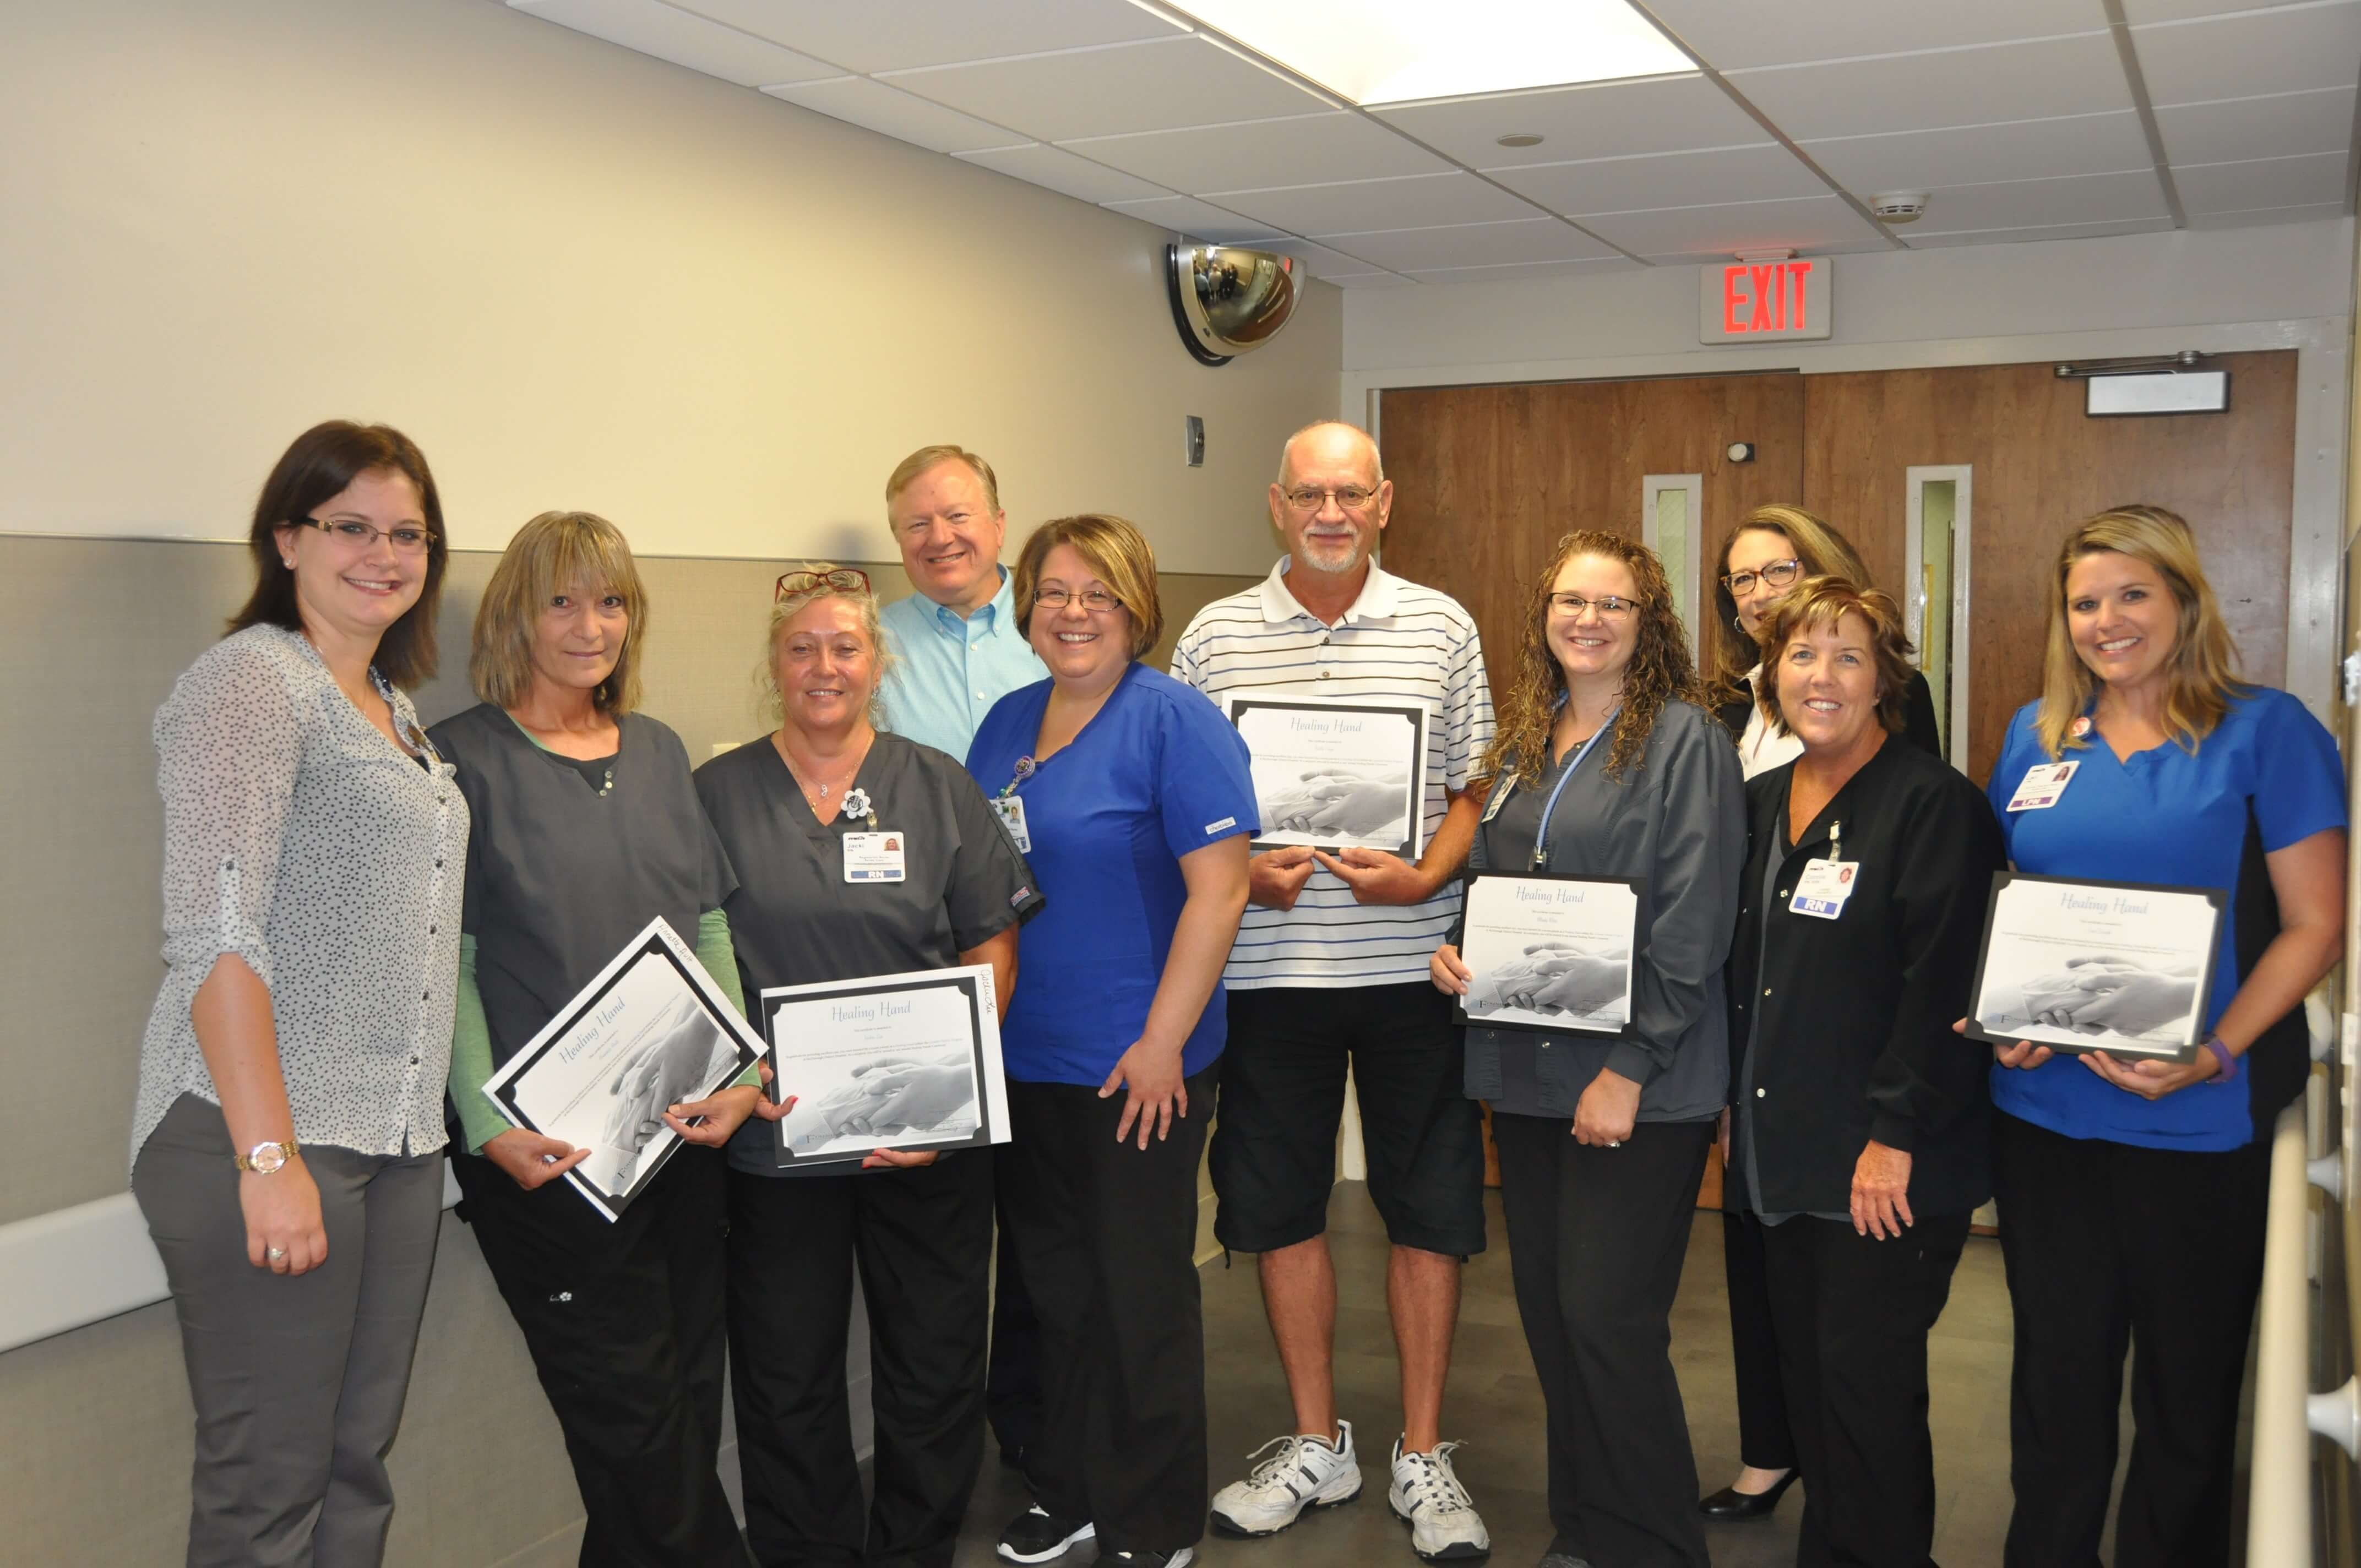 Acute care staff with award